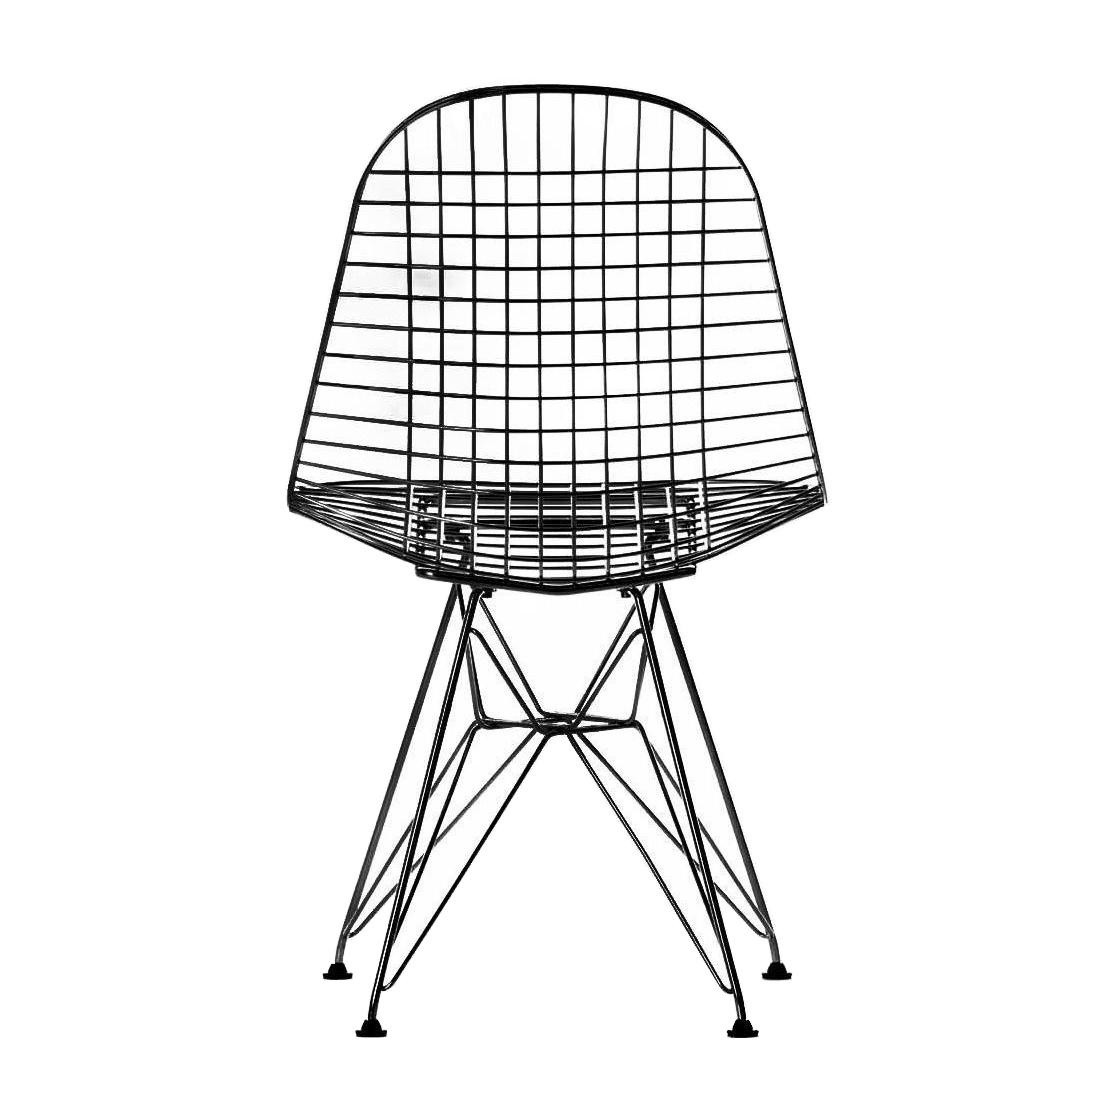 1117x1117 Eames Wire Chair Dkr 43cm Vitra